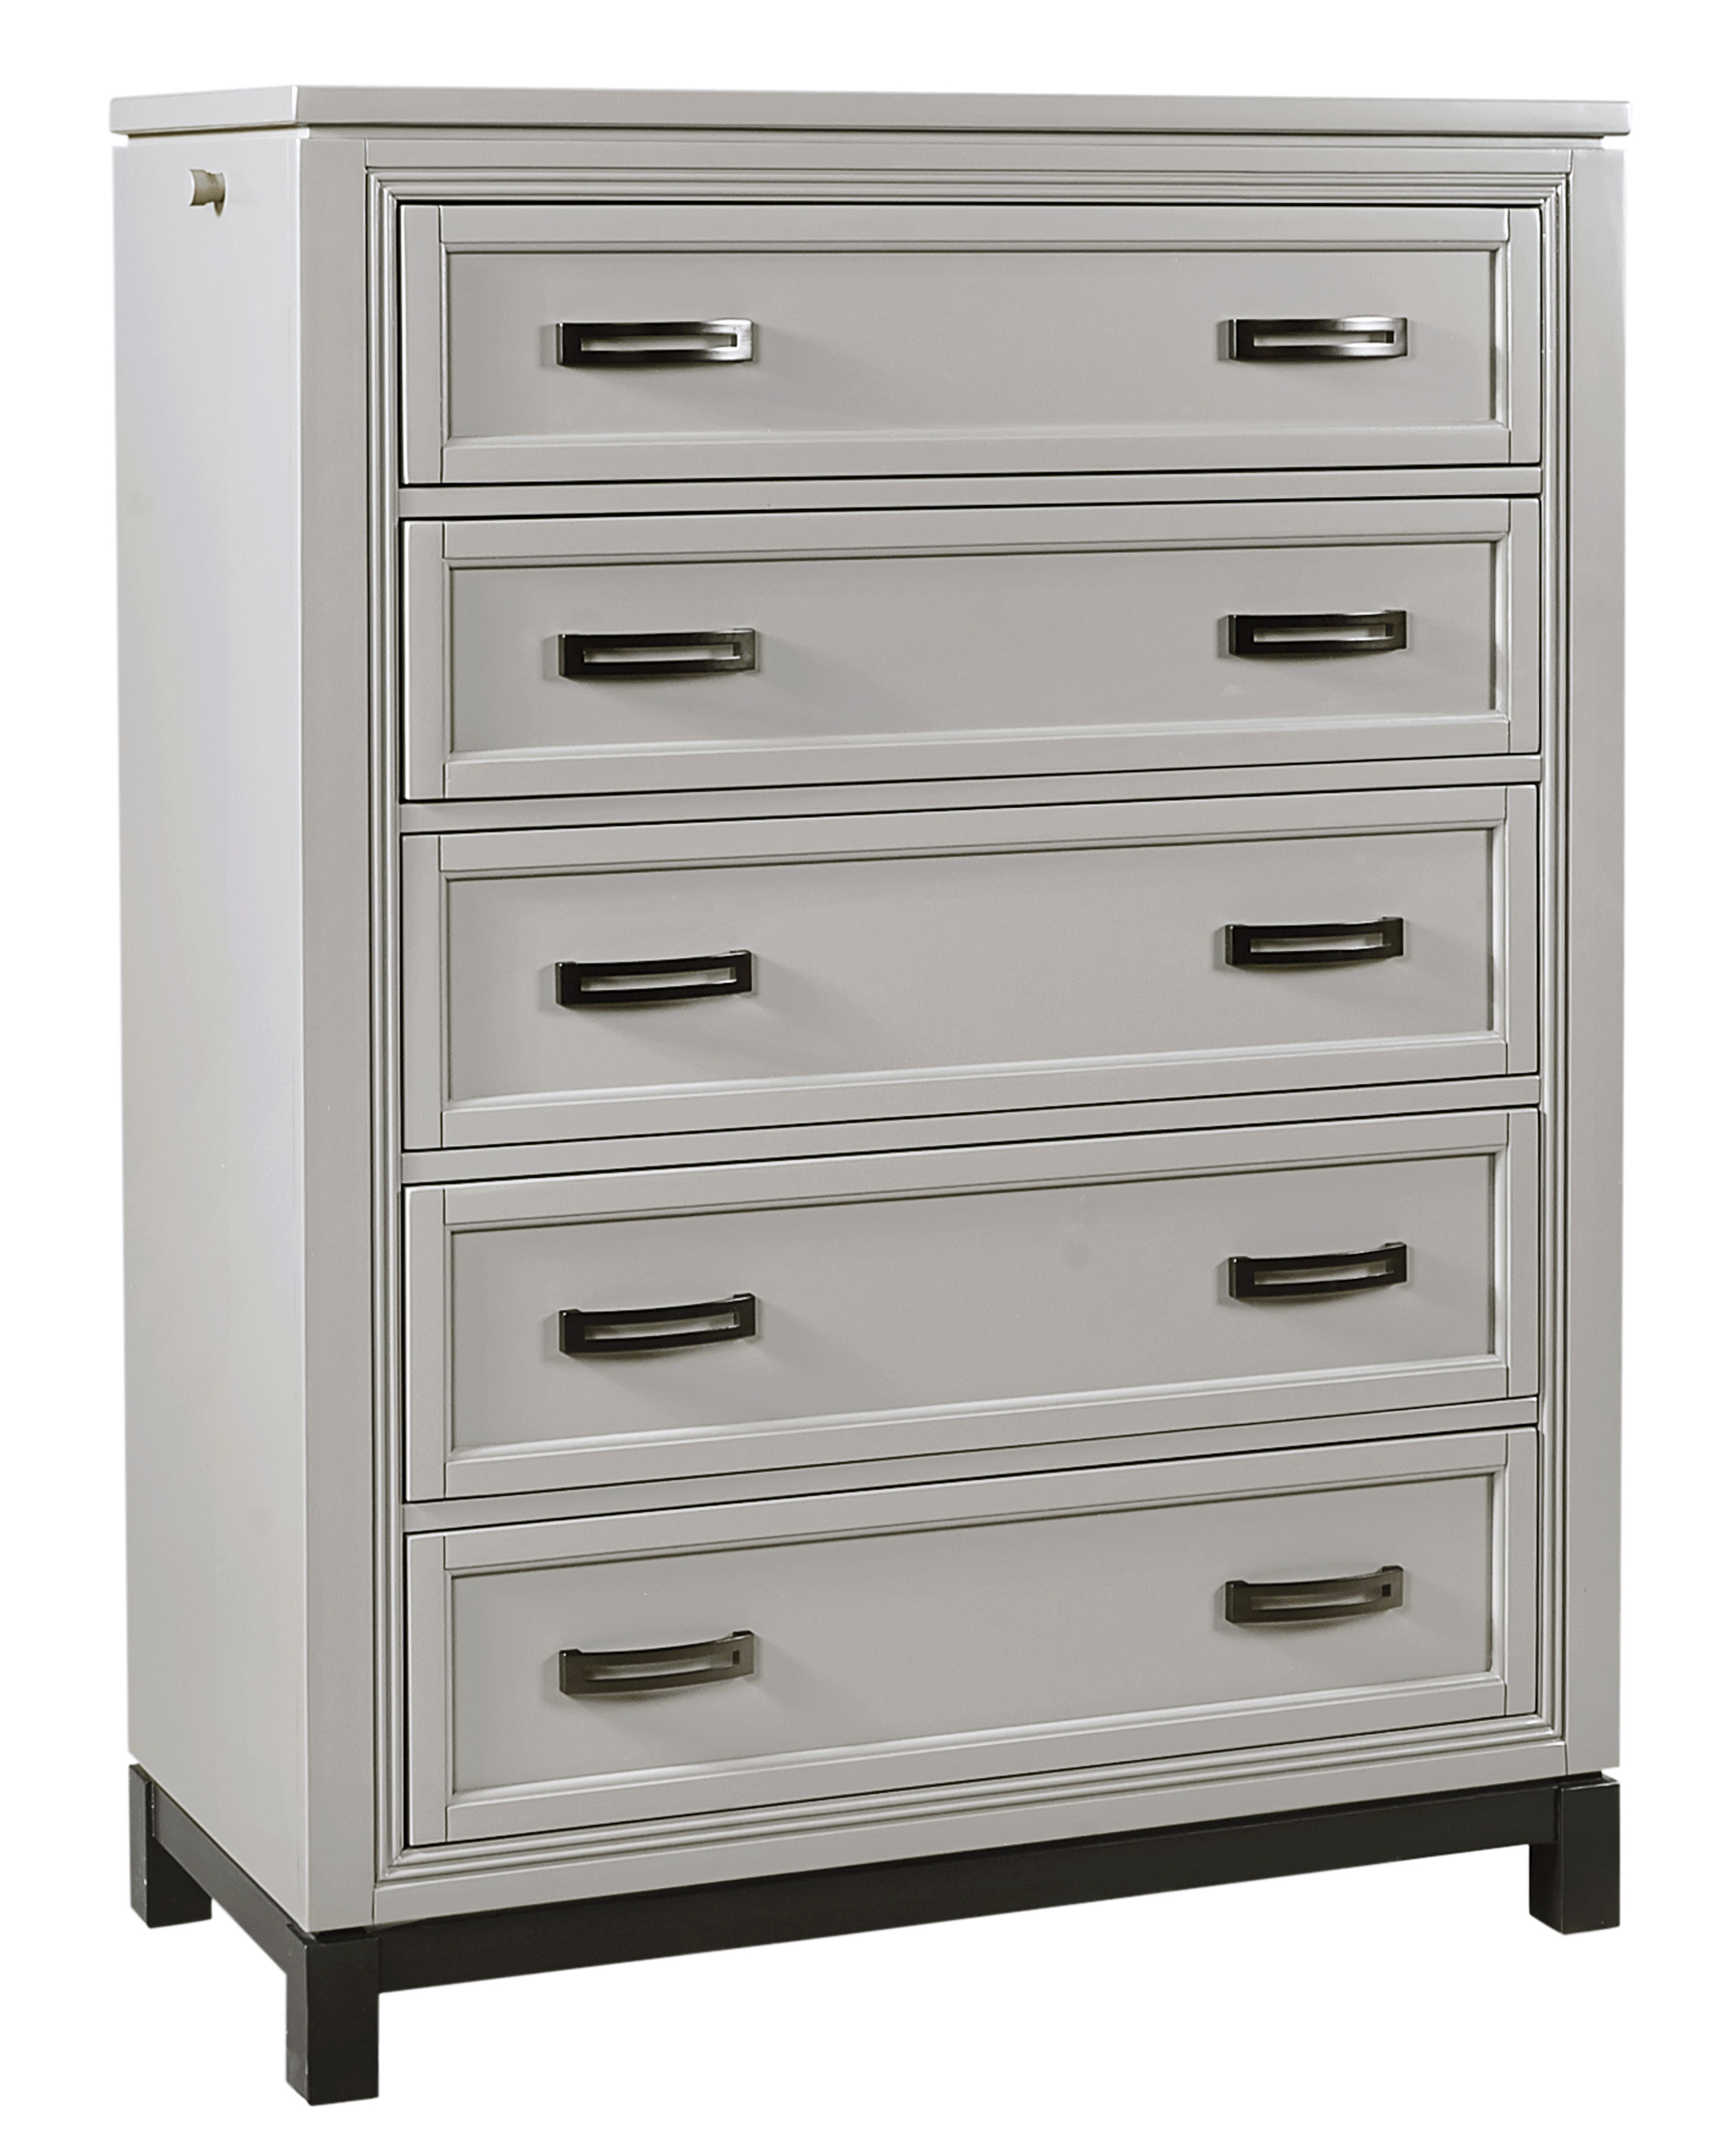 Hyde Park 5 Drawer Chest  by Aspenhome at Baer's Furniture